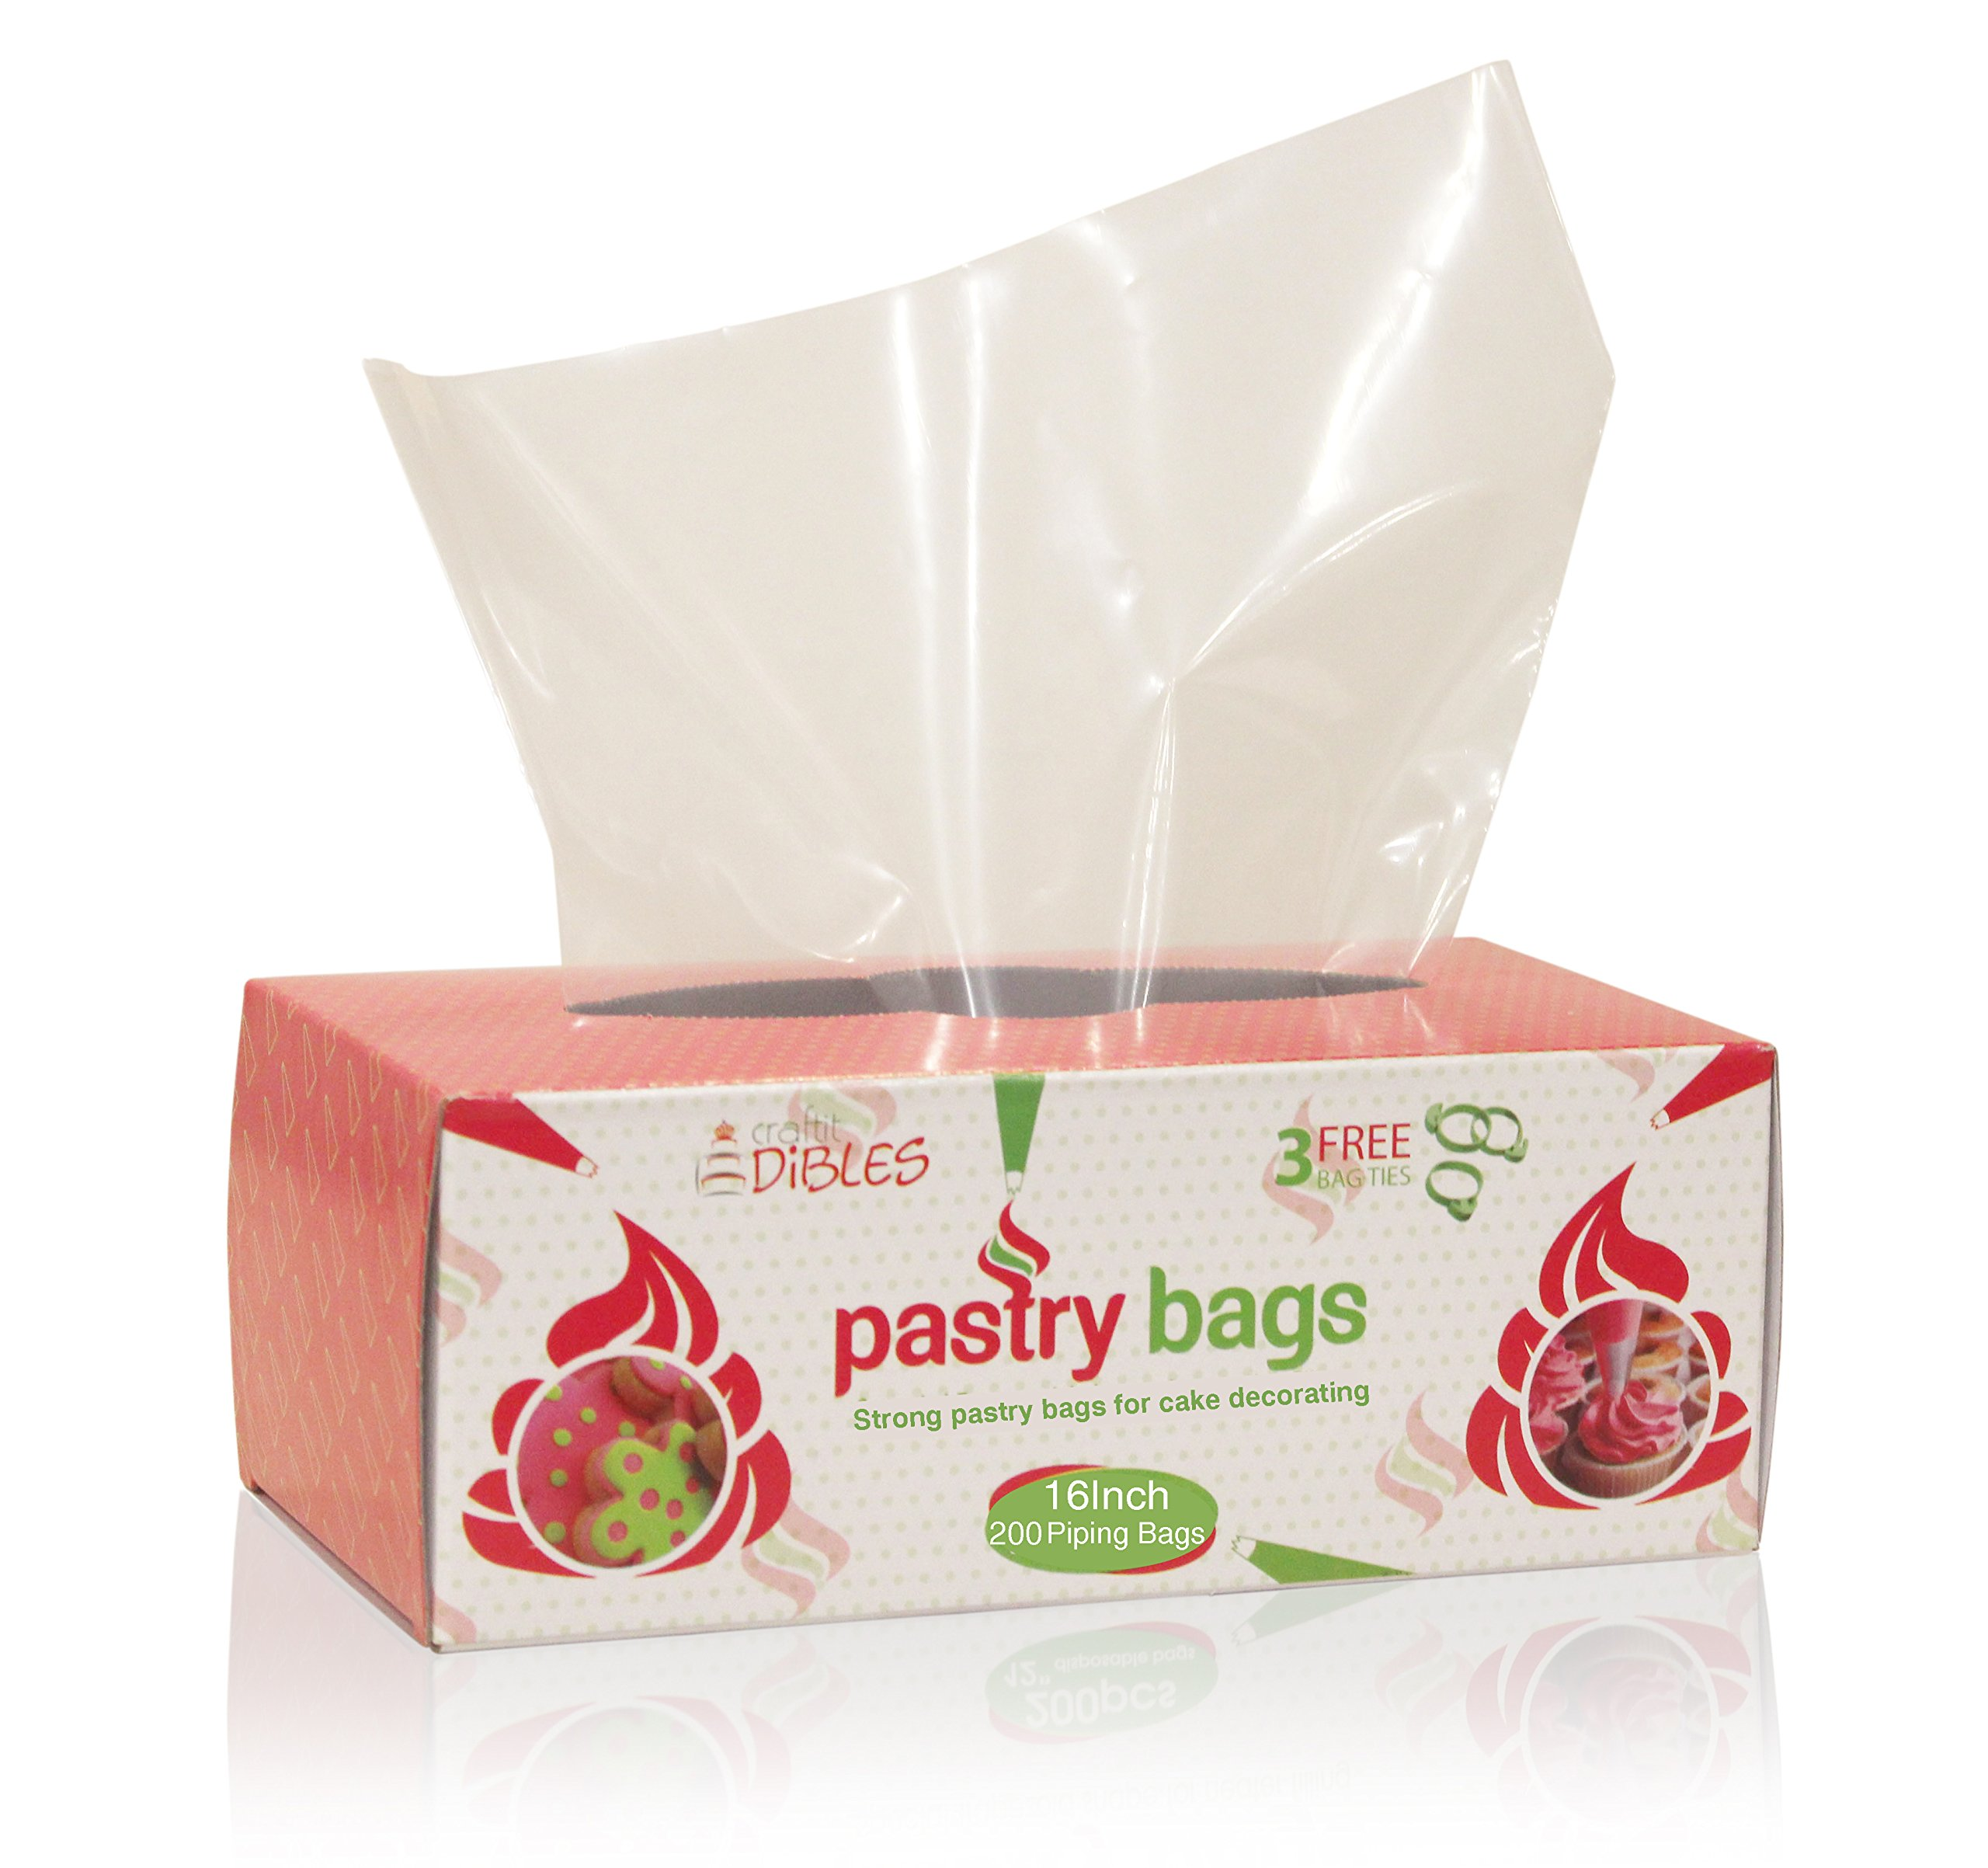 Disposable Pastry Bags, 200 Pack - 16 Inch Extra Thick Icing Bags in Dispenser box, Microwave safe - 3 Free piping bag ties included!